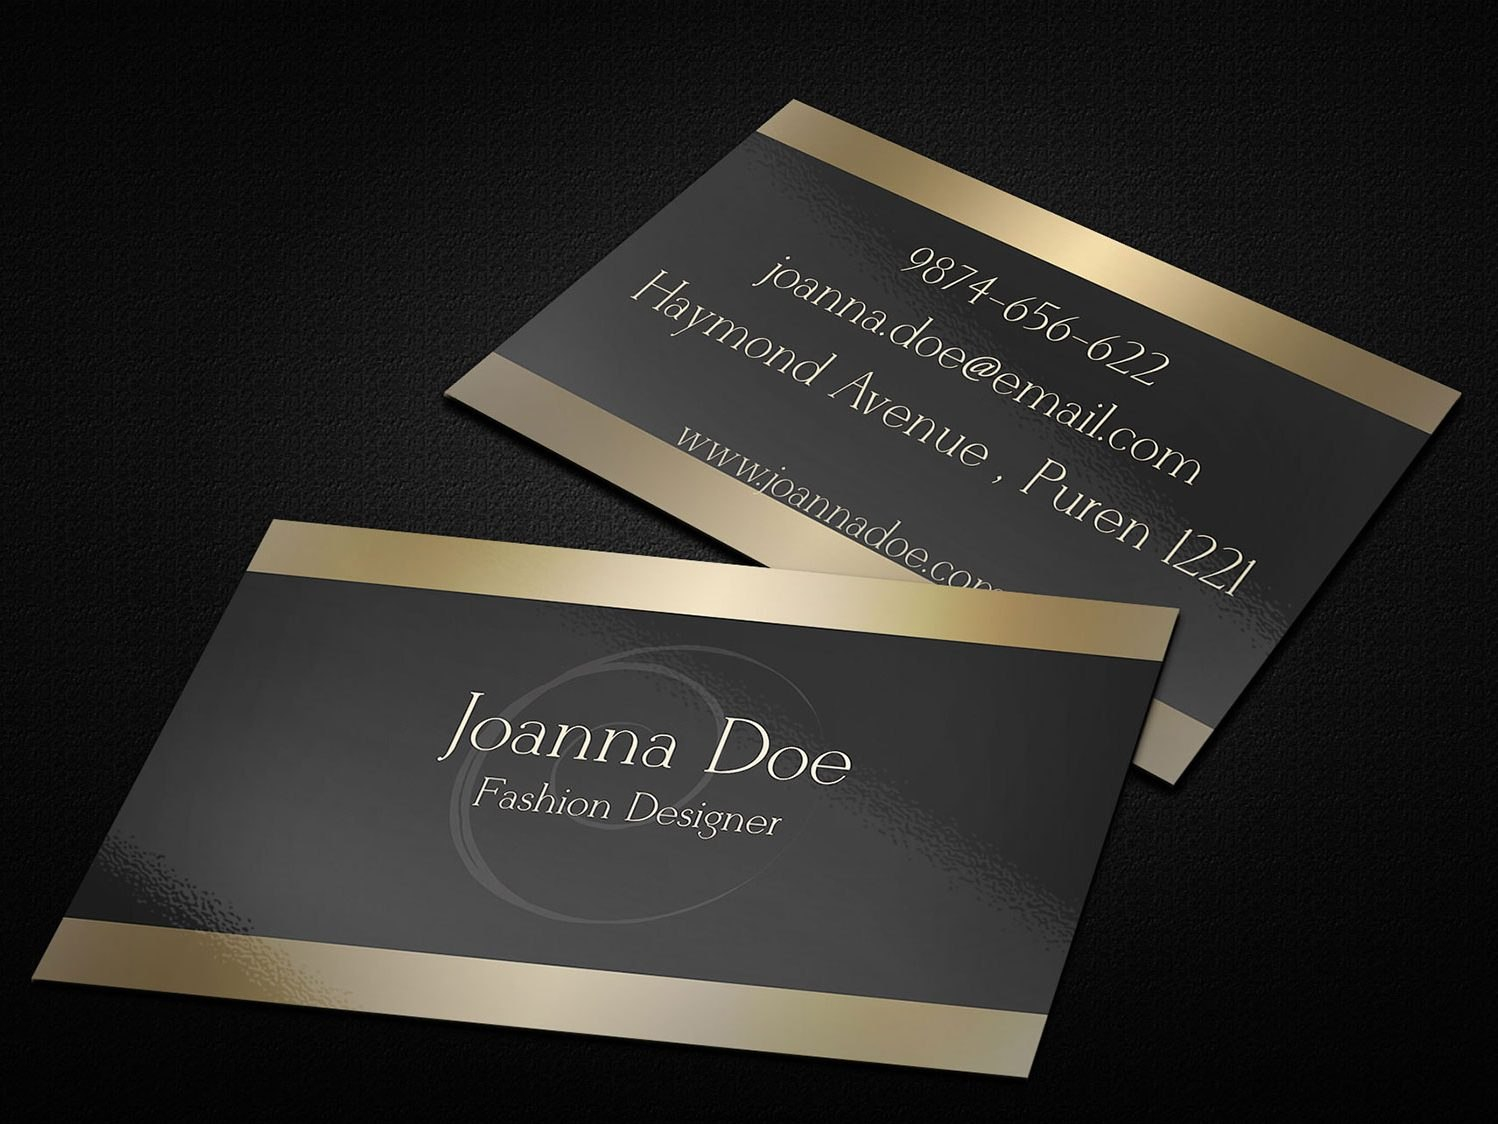 Fashion Designer Business Card Template  Business Cards Lab Throughout Designer Visiting Cards Templates